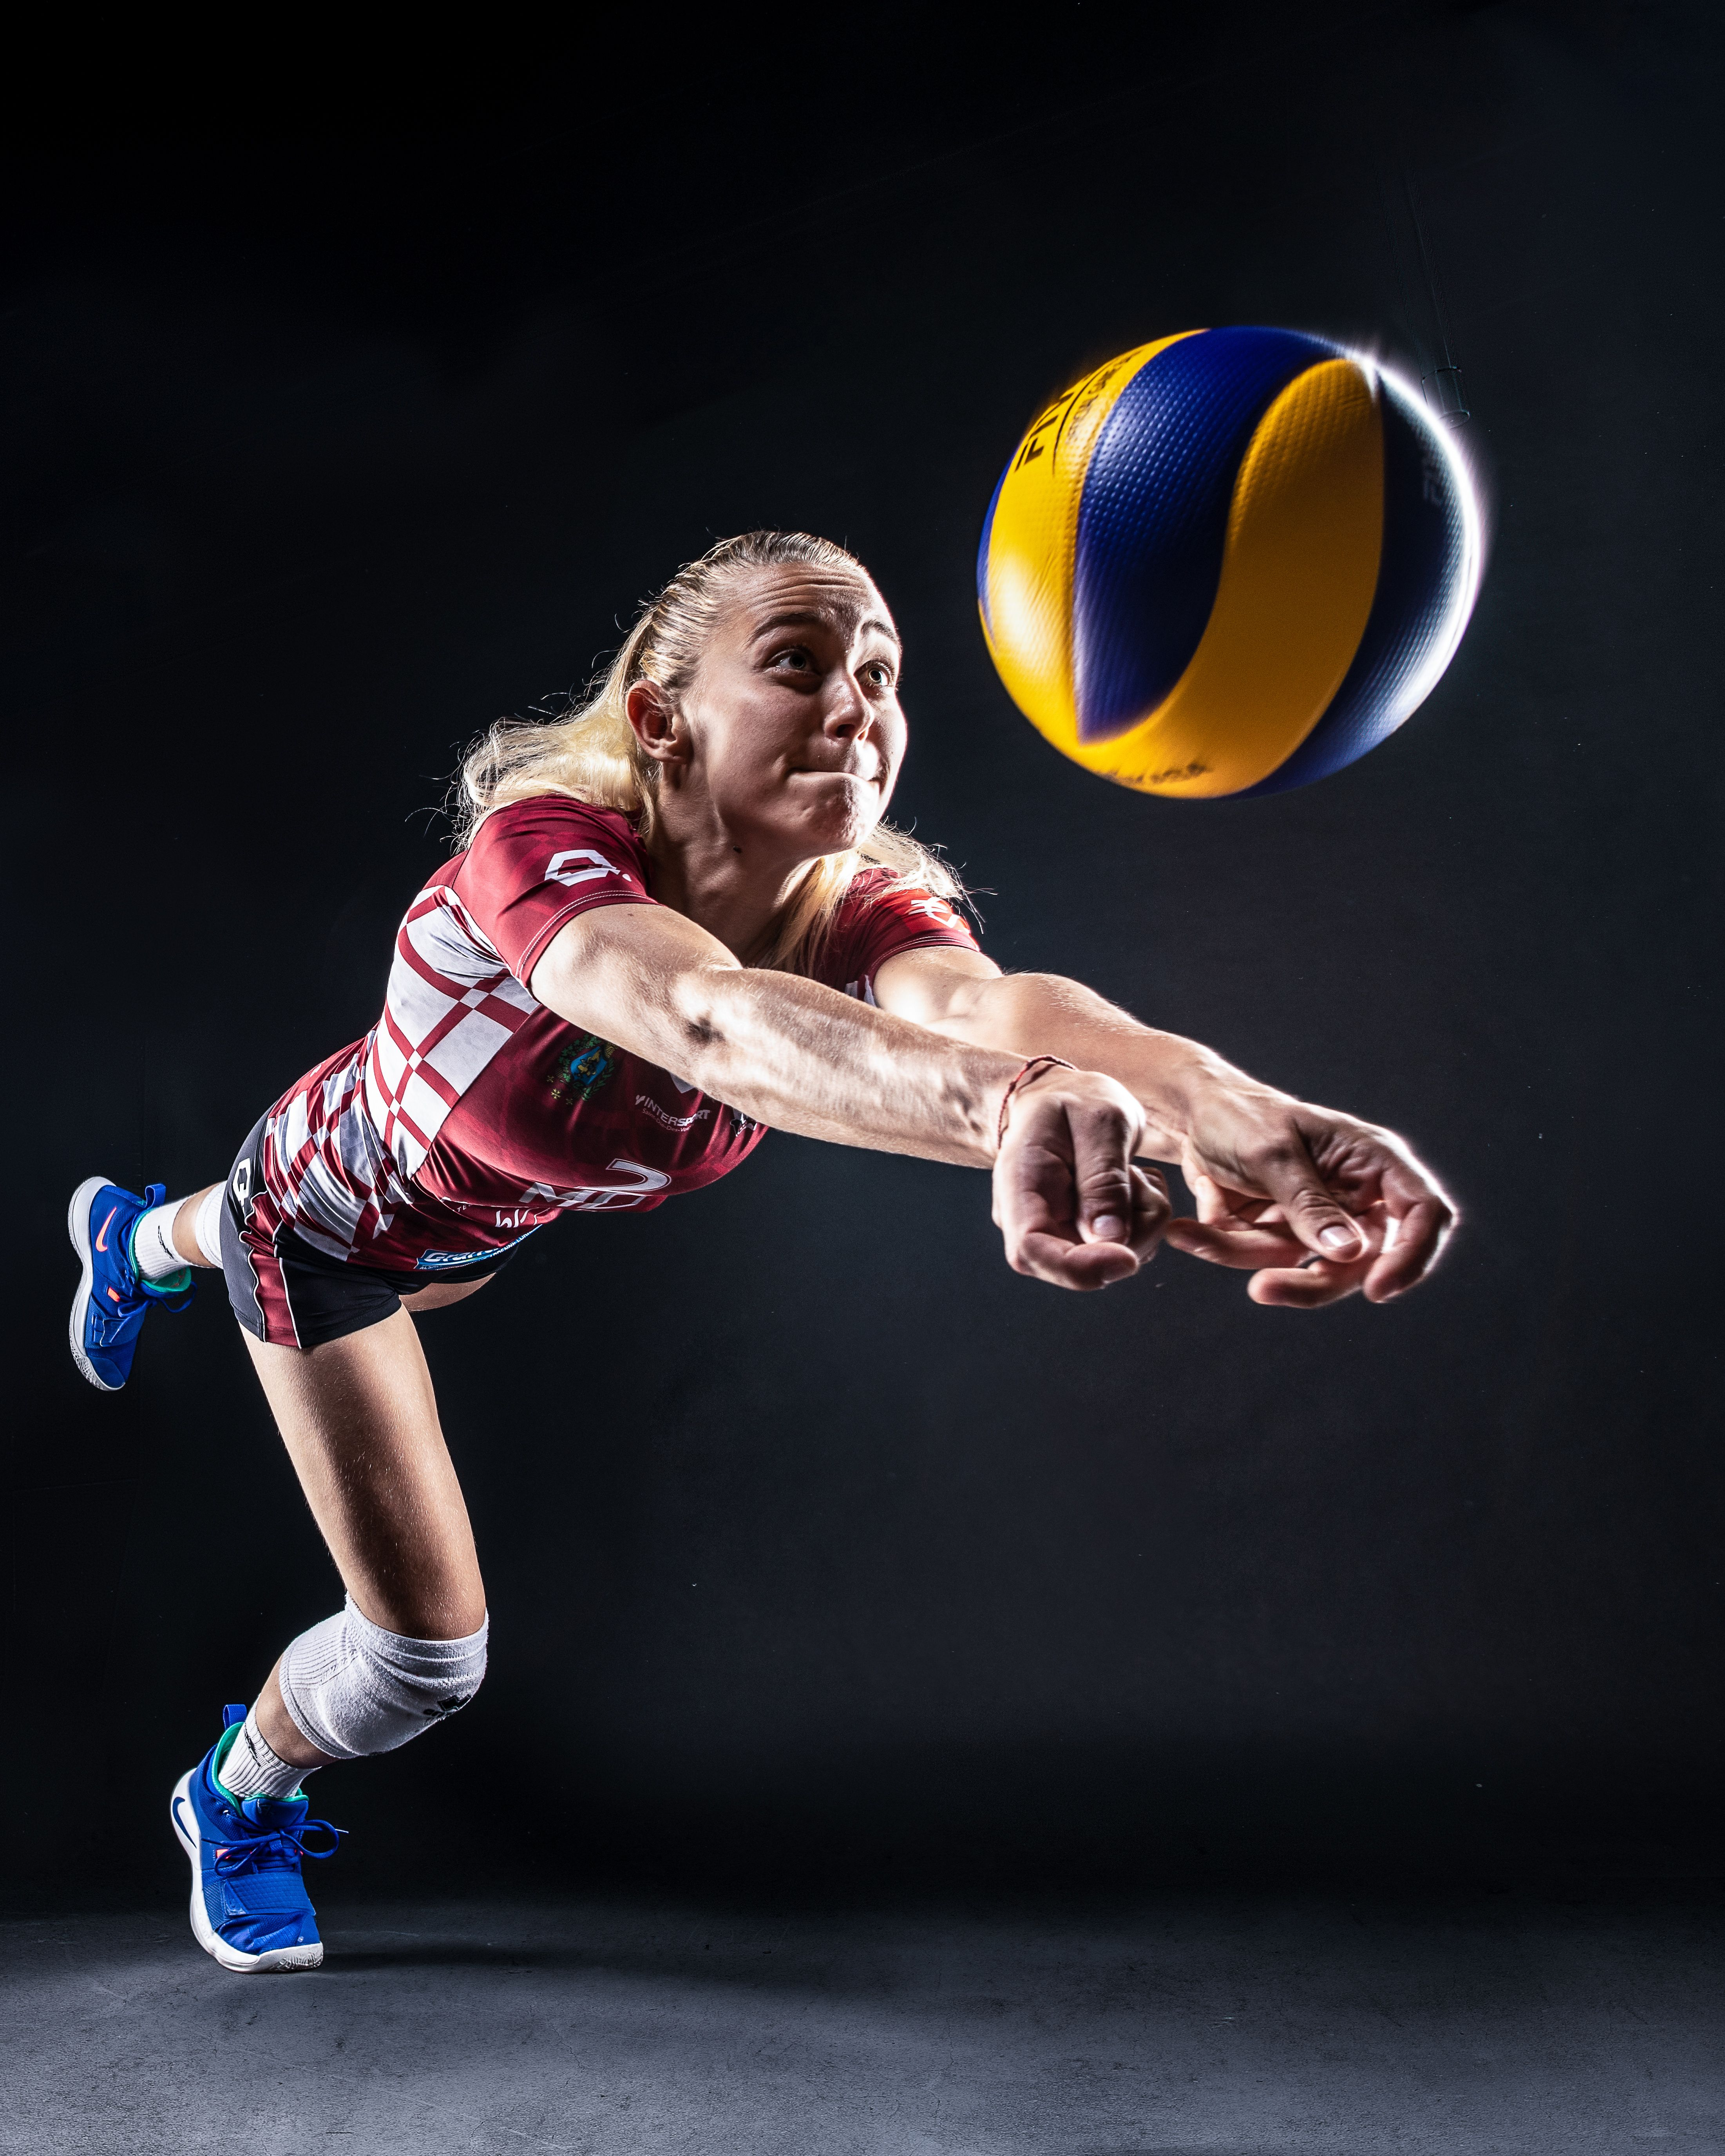 Action Portrait Photography Photos De Volleyball Photographie Volley Ball